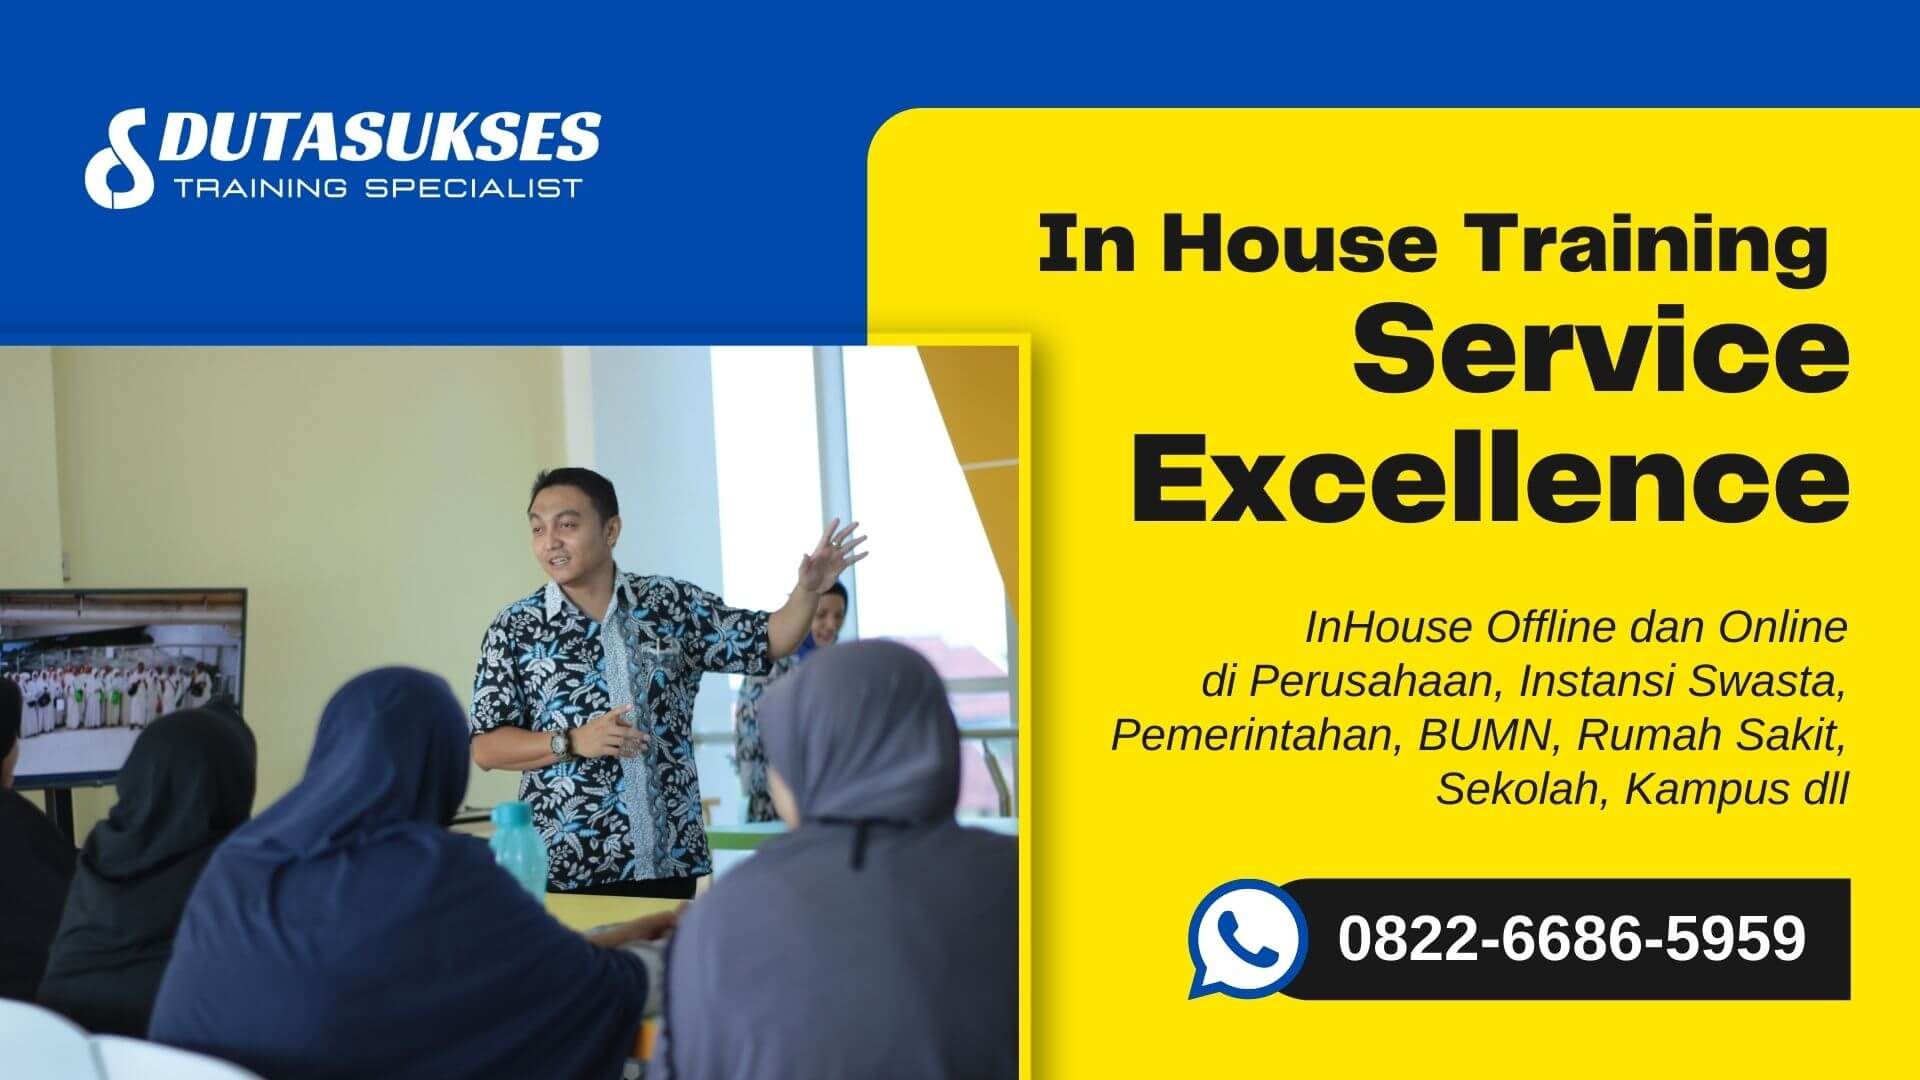 In House Training Service Excellence